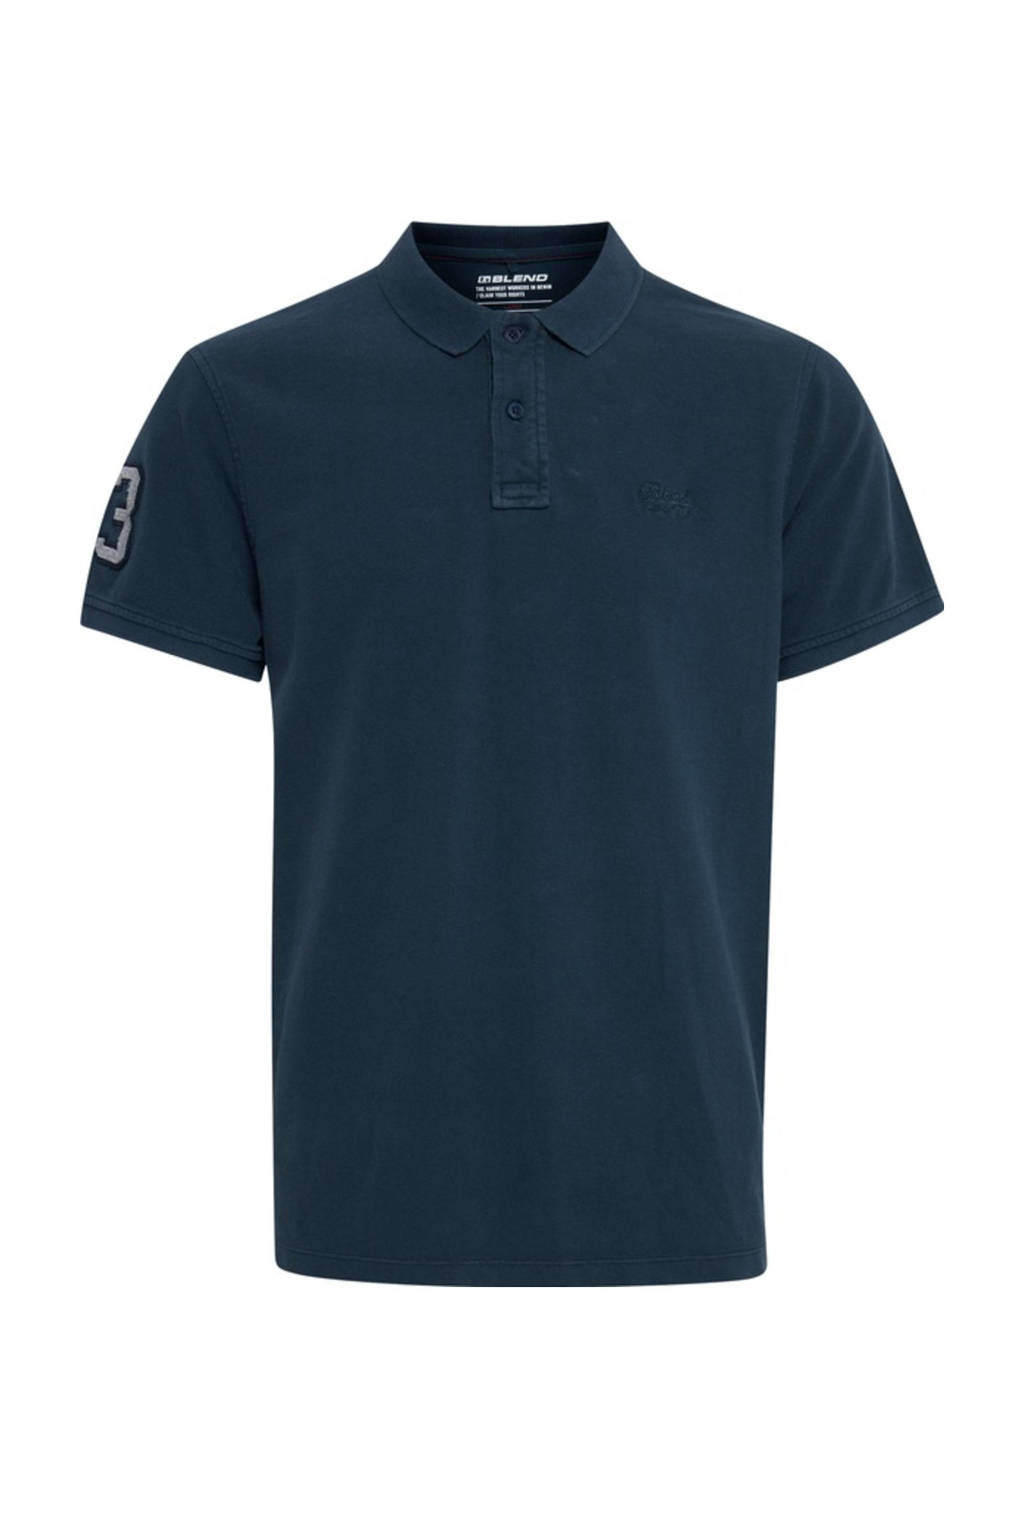 Blend regular fit polo donkerblauw, Donkerblauw